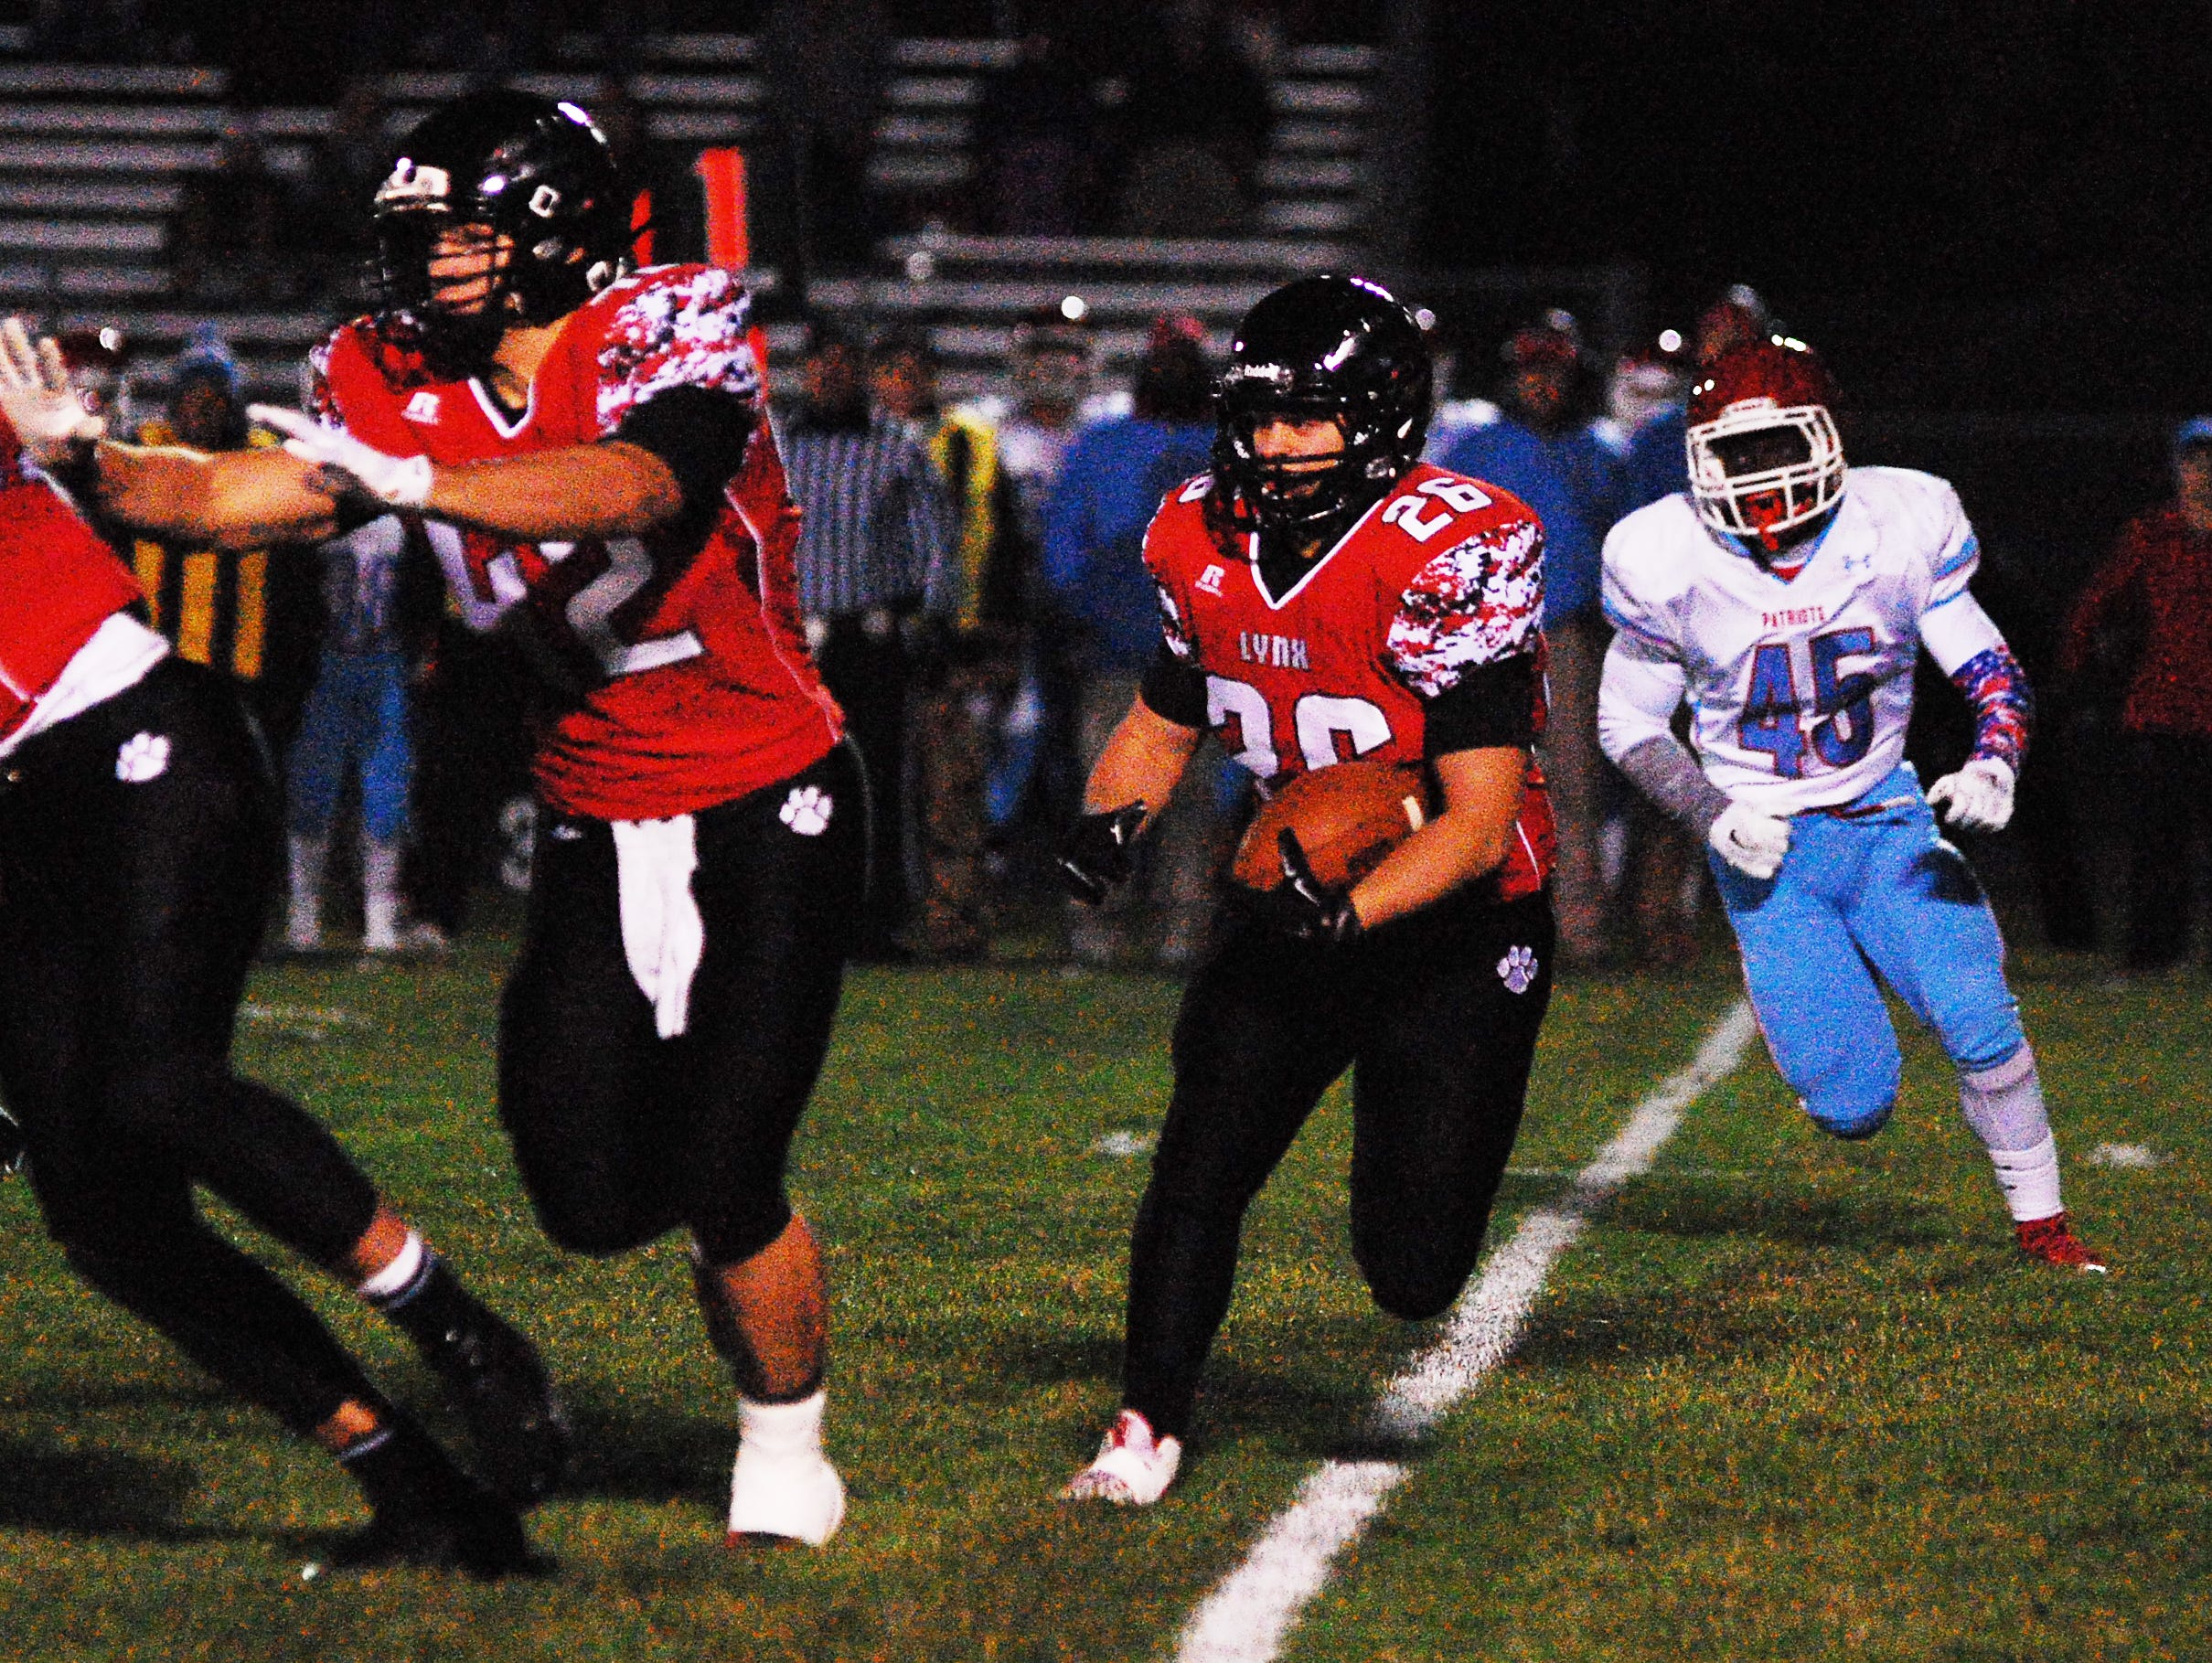 Brandon Valley's Tyler Hintz (26) gets a block from teammate Andrew Sorensen as Lincoln's Jimmy Smith is in pursuit of him. The Lynx won the 11AAA state quarterfinal game 28-14.